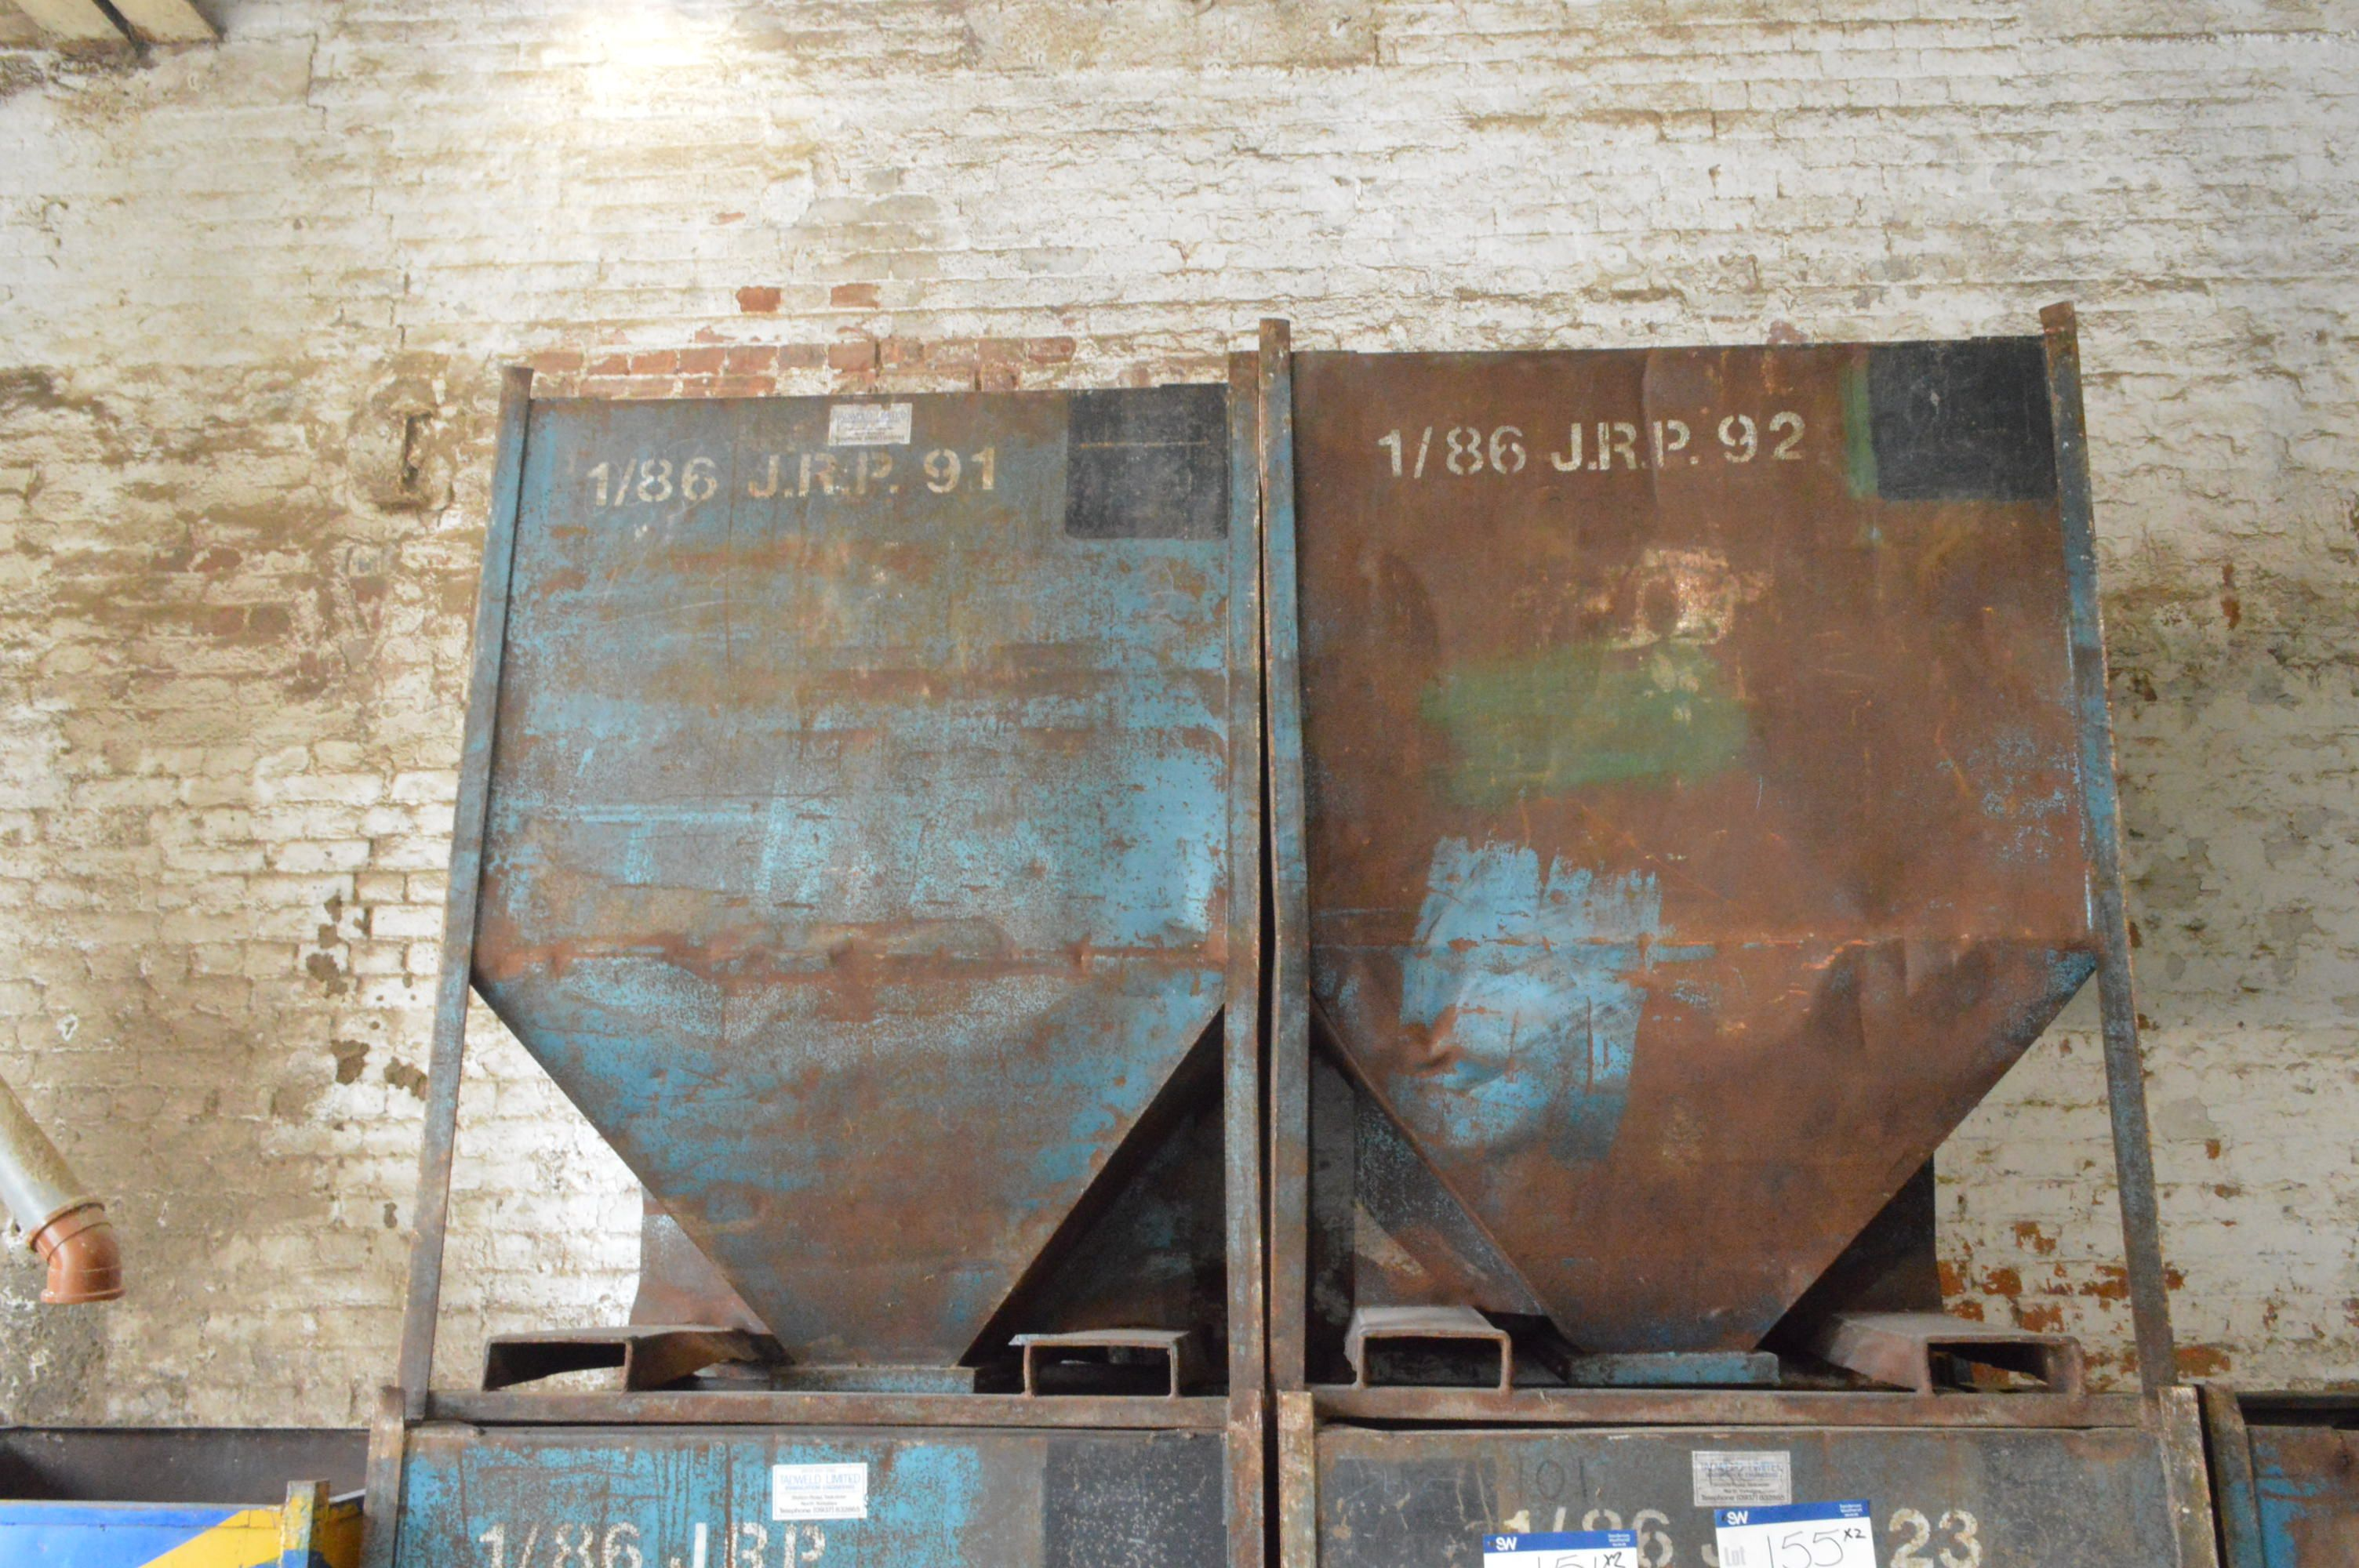 Lot 155 - Two x 1 tonne Hopper Bottom Tote Bins, each approx. 1.25m x 1.1m x 1.6m deep overall, with fork lift